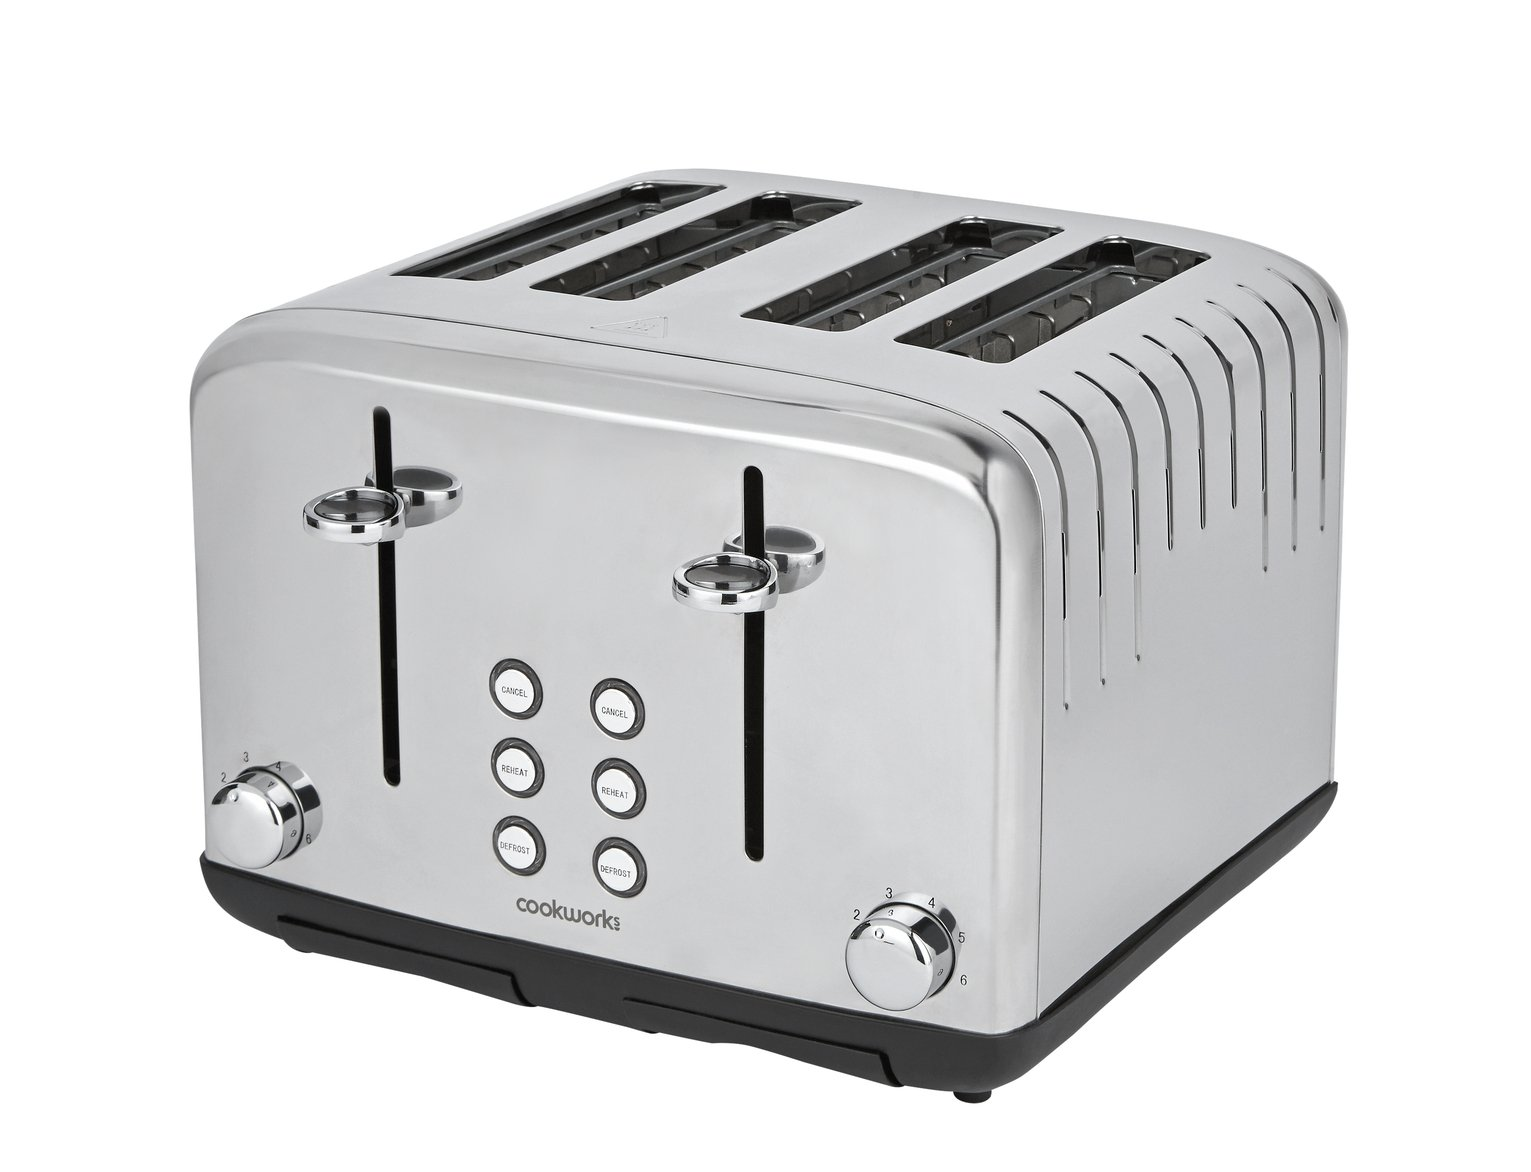 Cookworks Pyramid 4 Slice Toaster - Stainless Steel